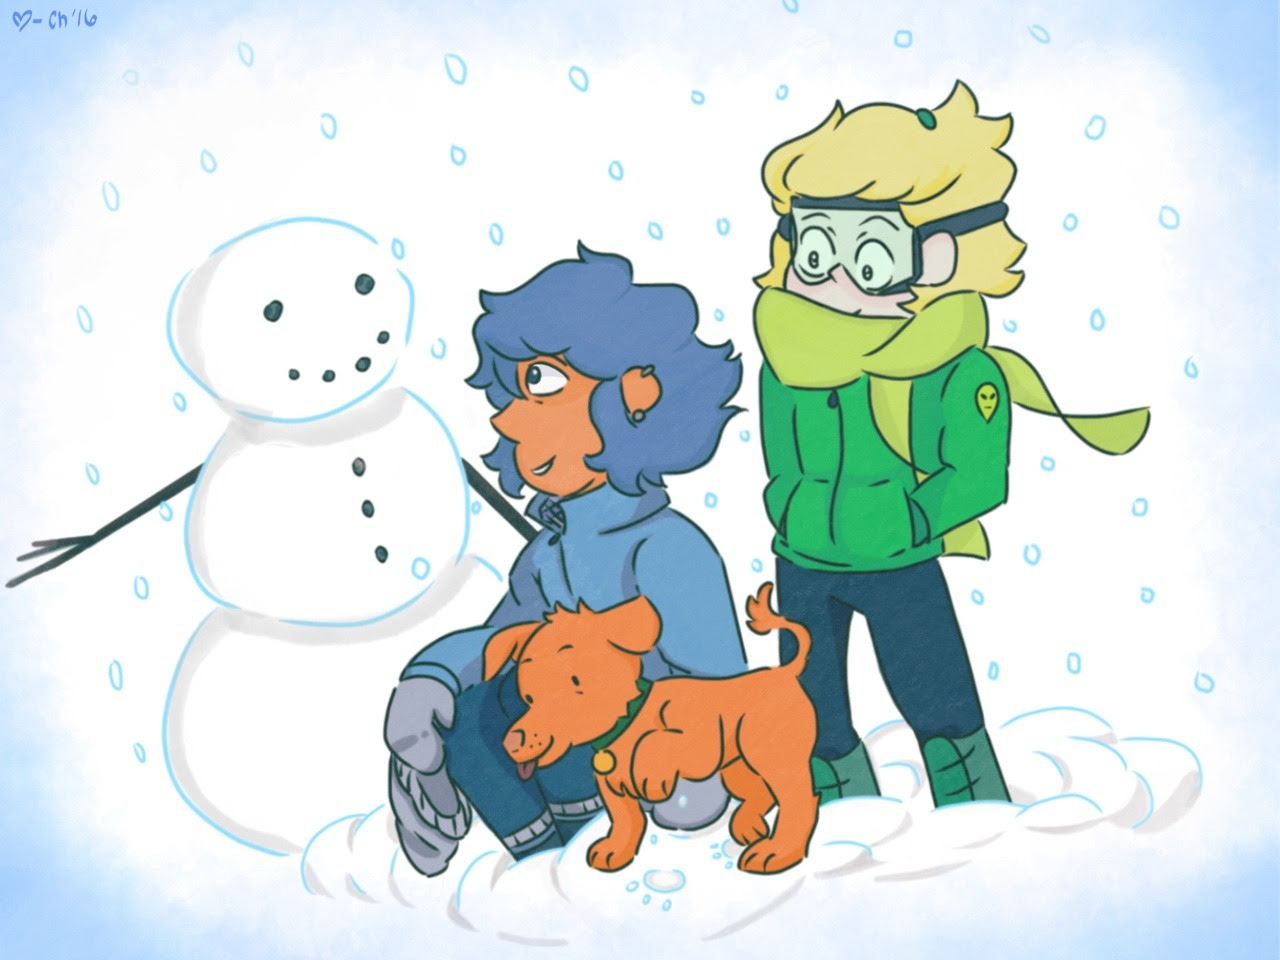 ❄️HAPPY HOLIDAYS! Have some good ol' human au to warm your frozen heart for the season! Feat. Pumpkin the pupper! 💧💚🎃❄️